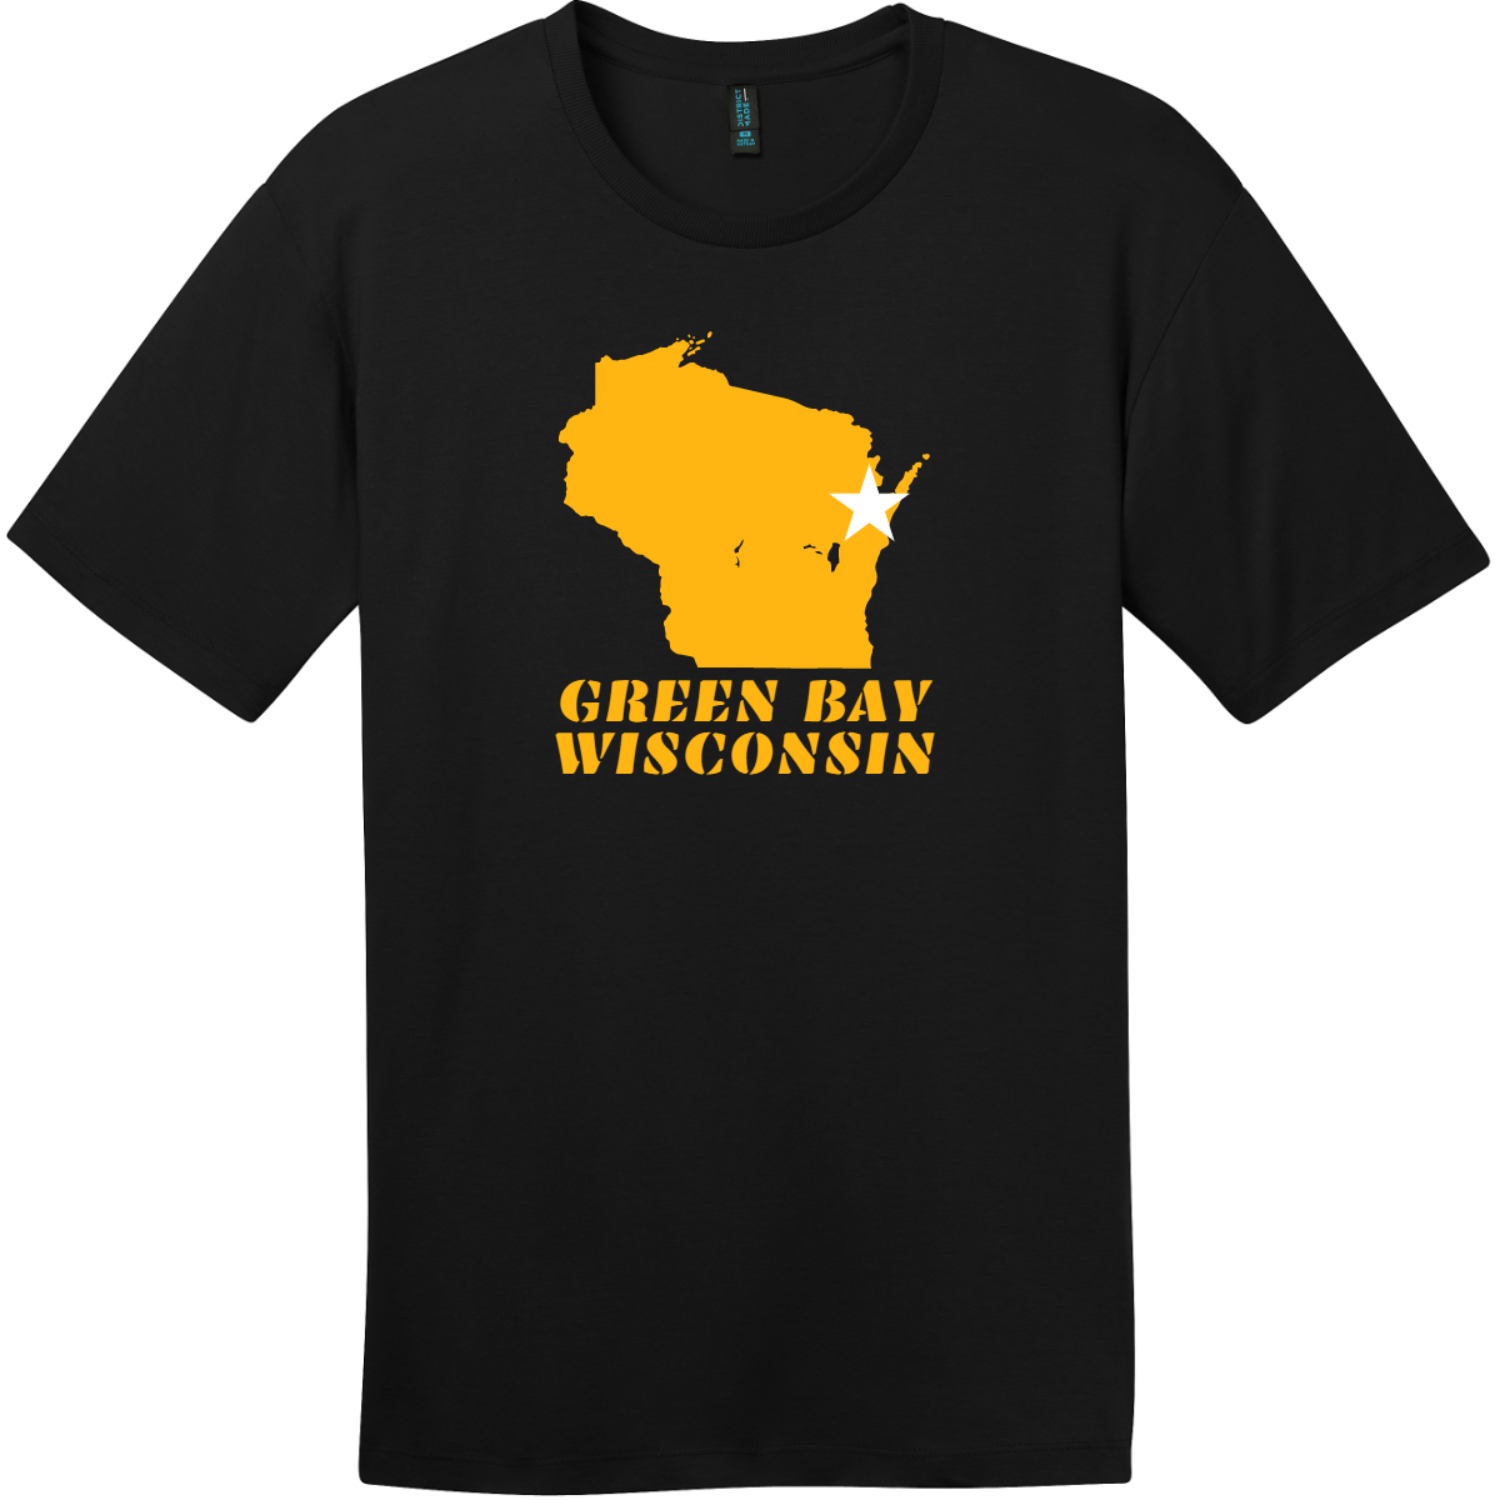 Green Bay Wisconsin State Retro T-Shirt Jet Black District Perfect Weight Tee DT104